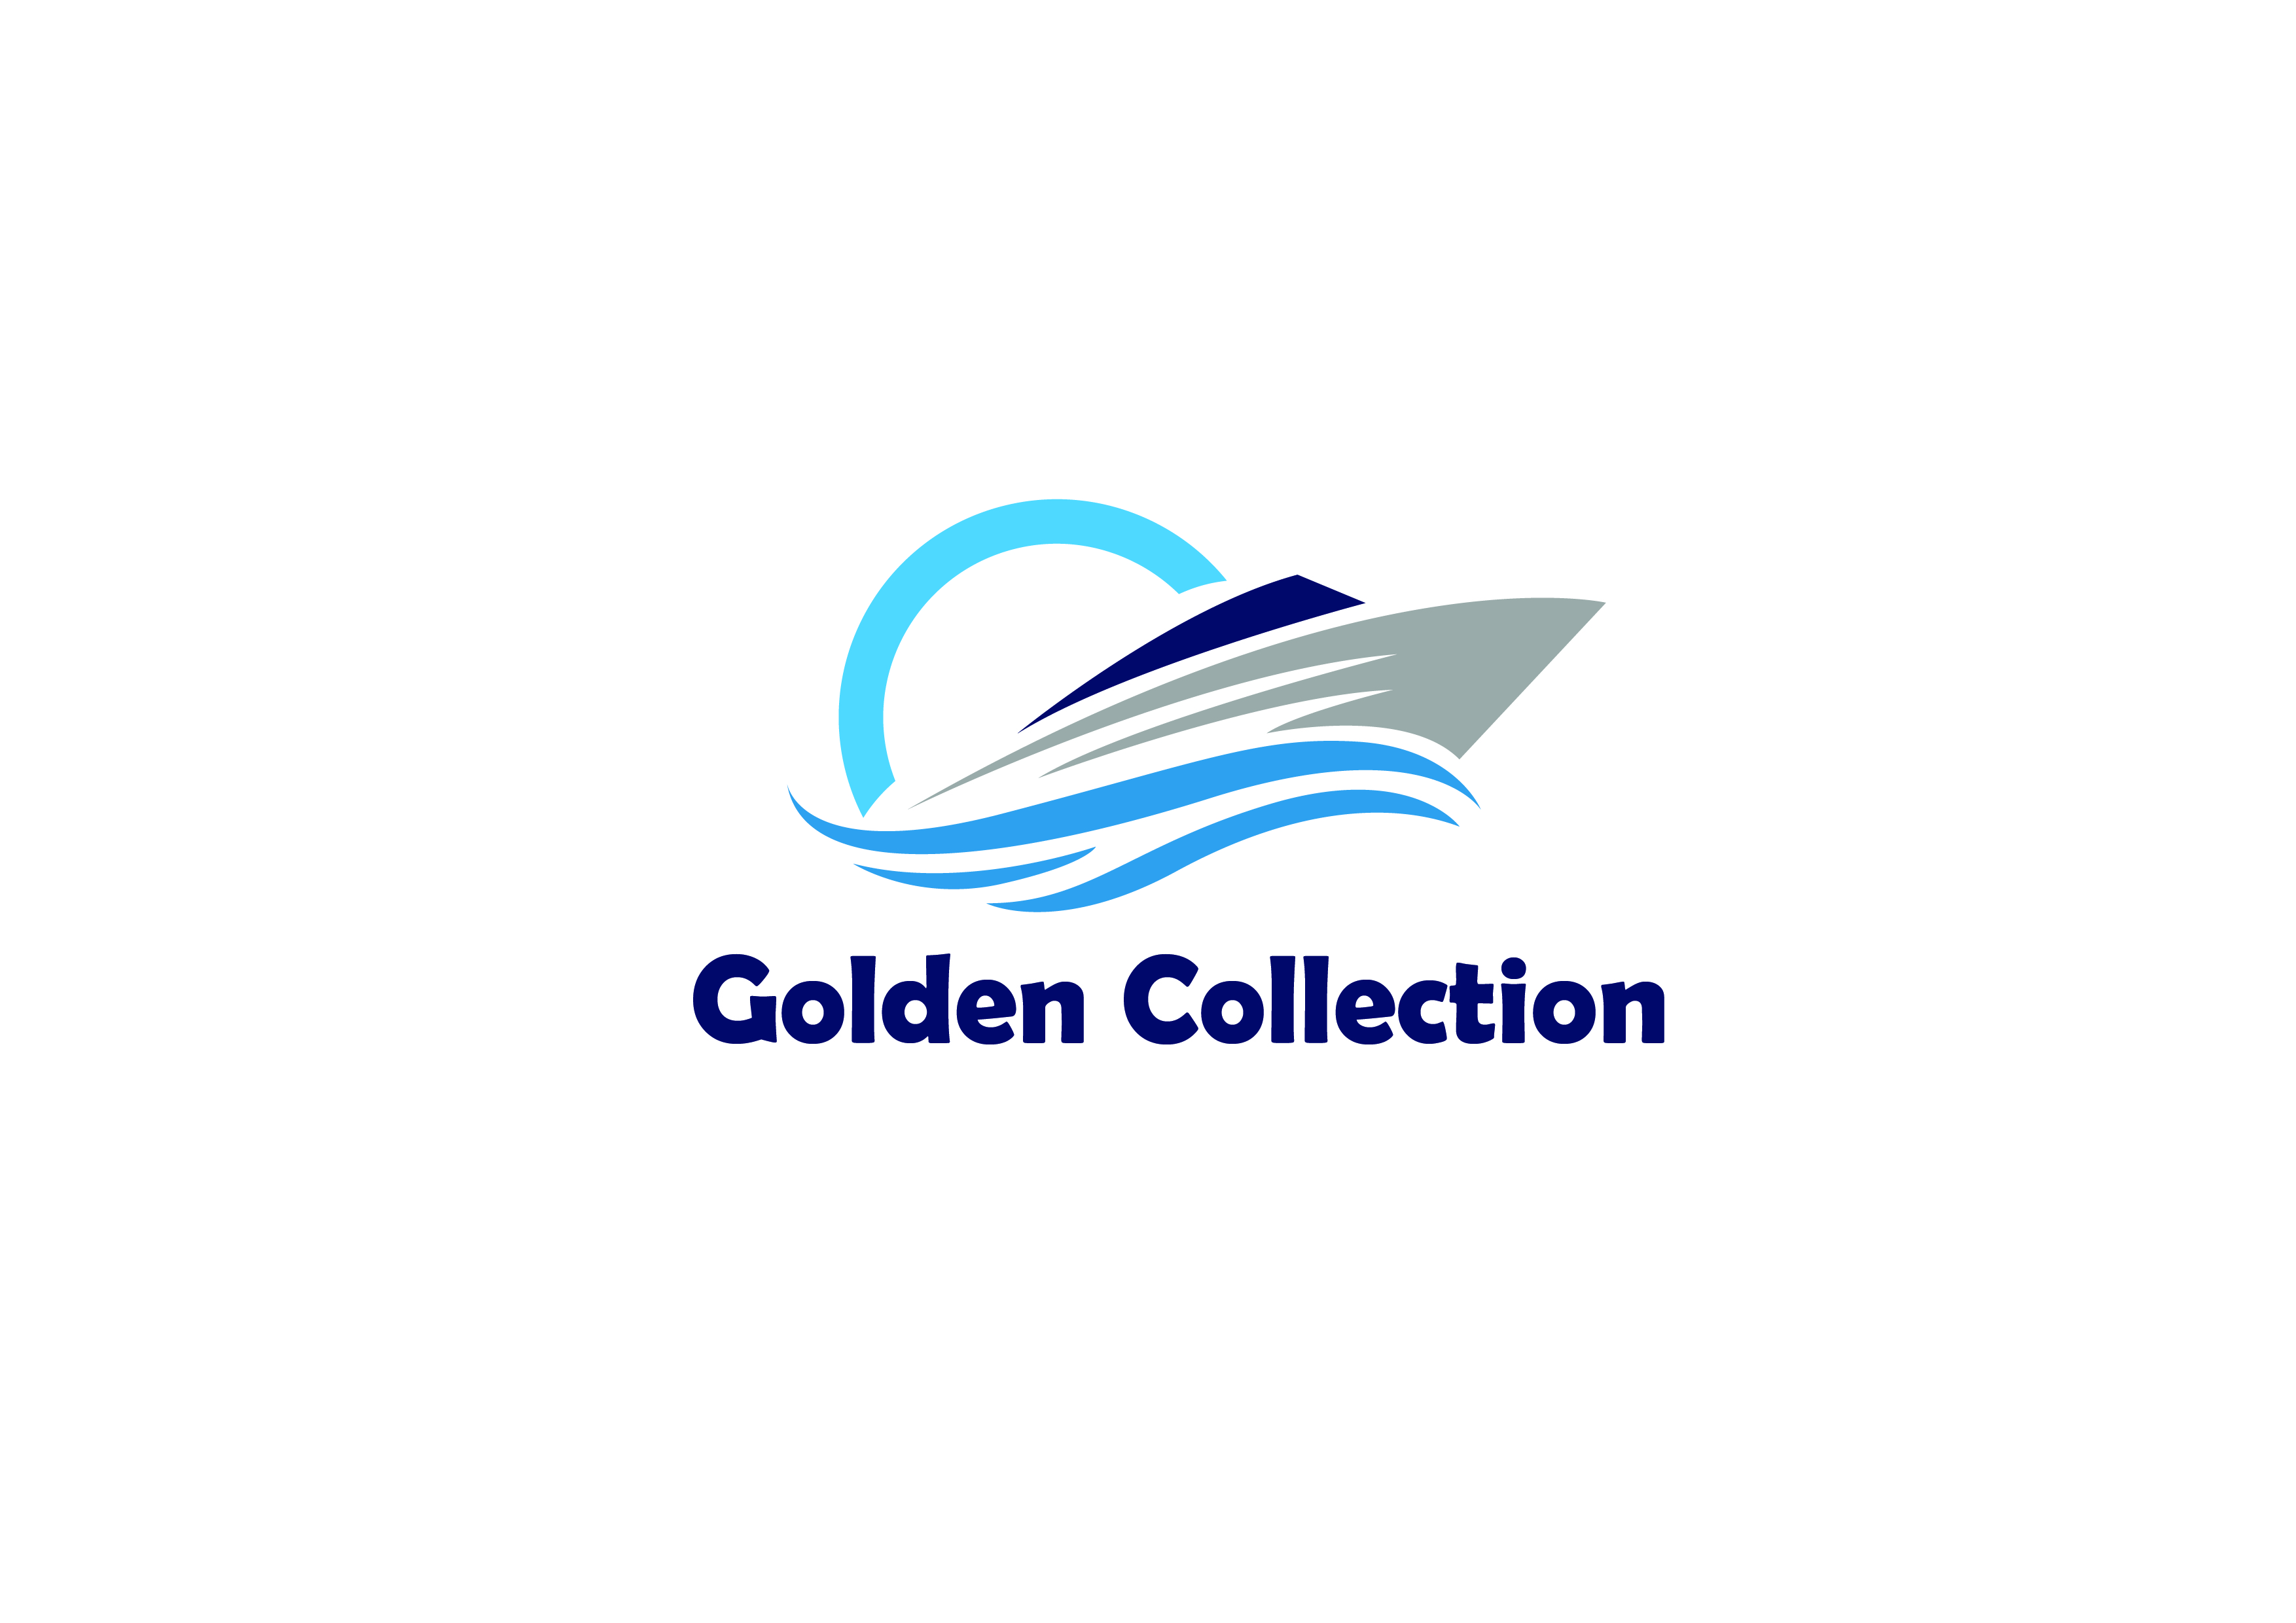 Golden Collection For Import & Export